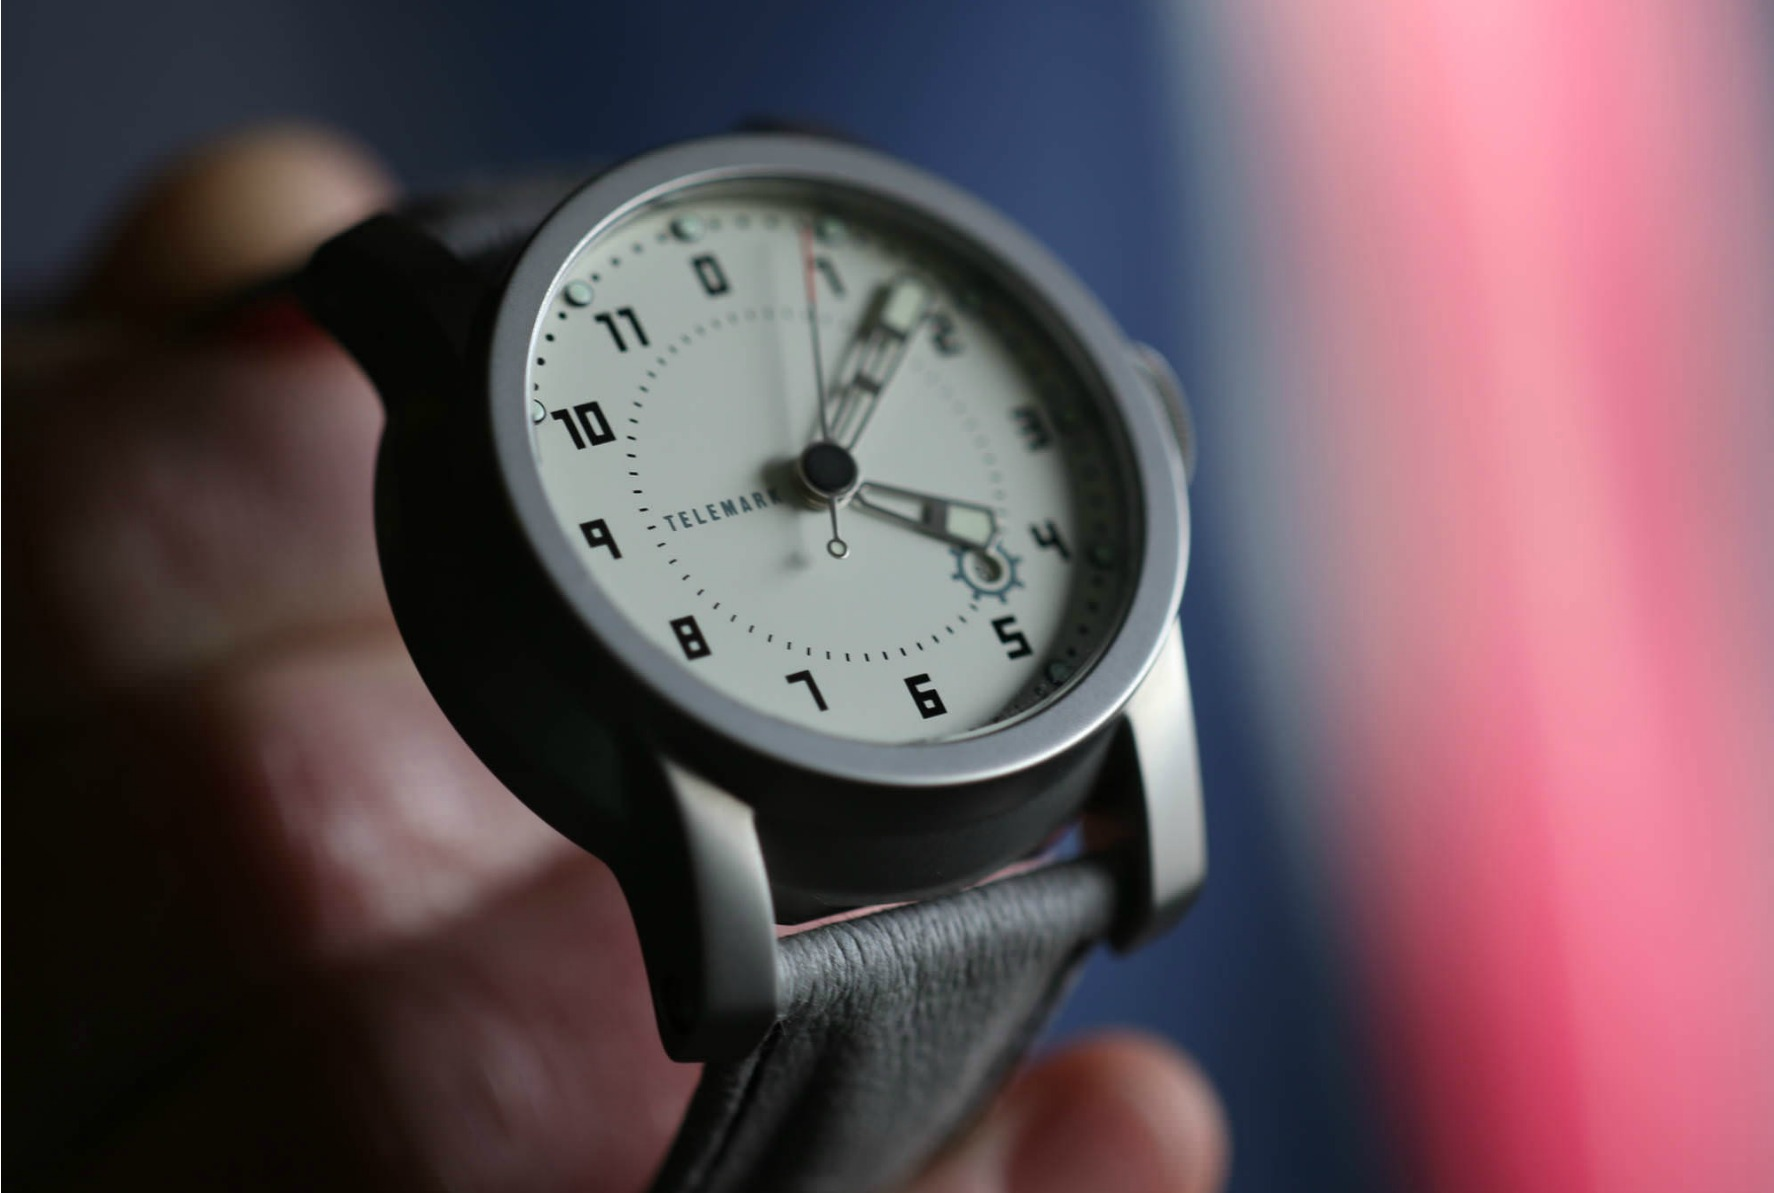 Schofield Telemark watch